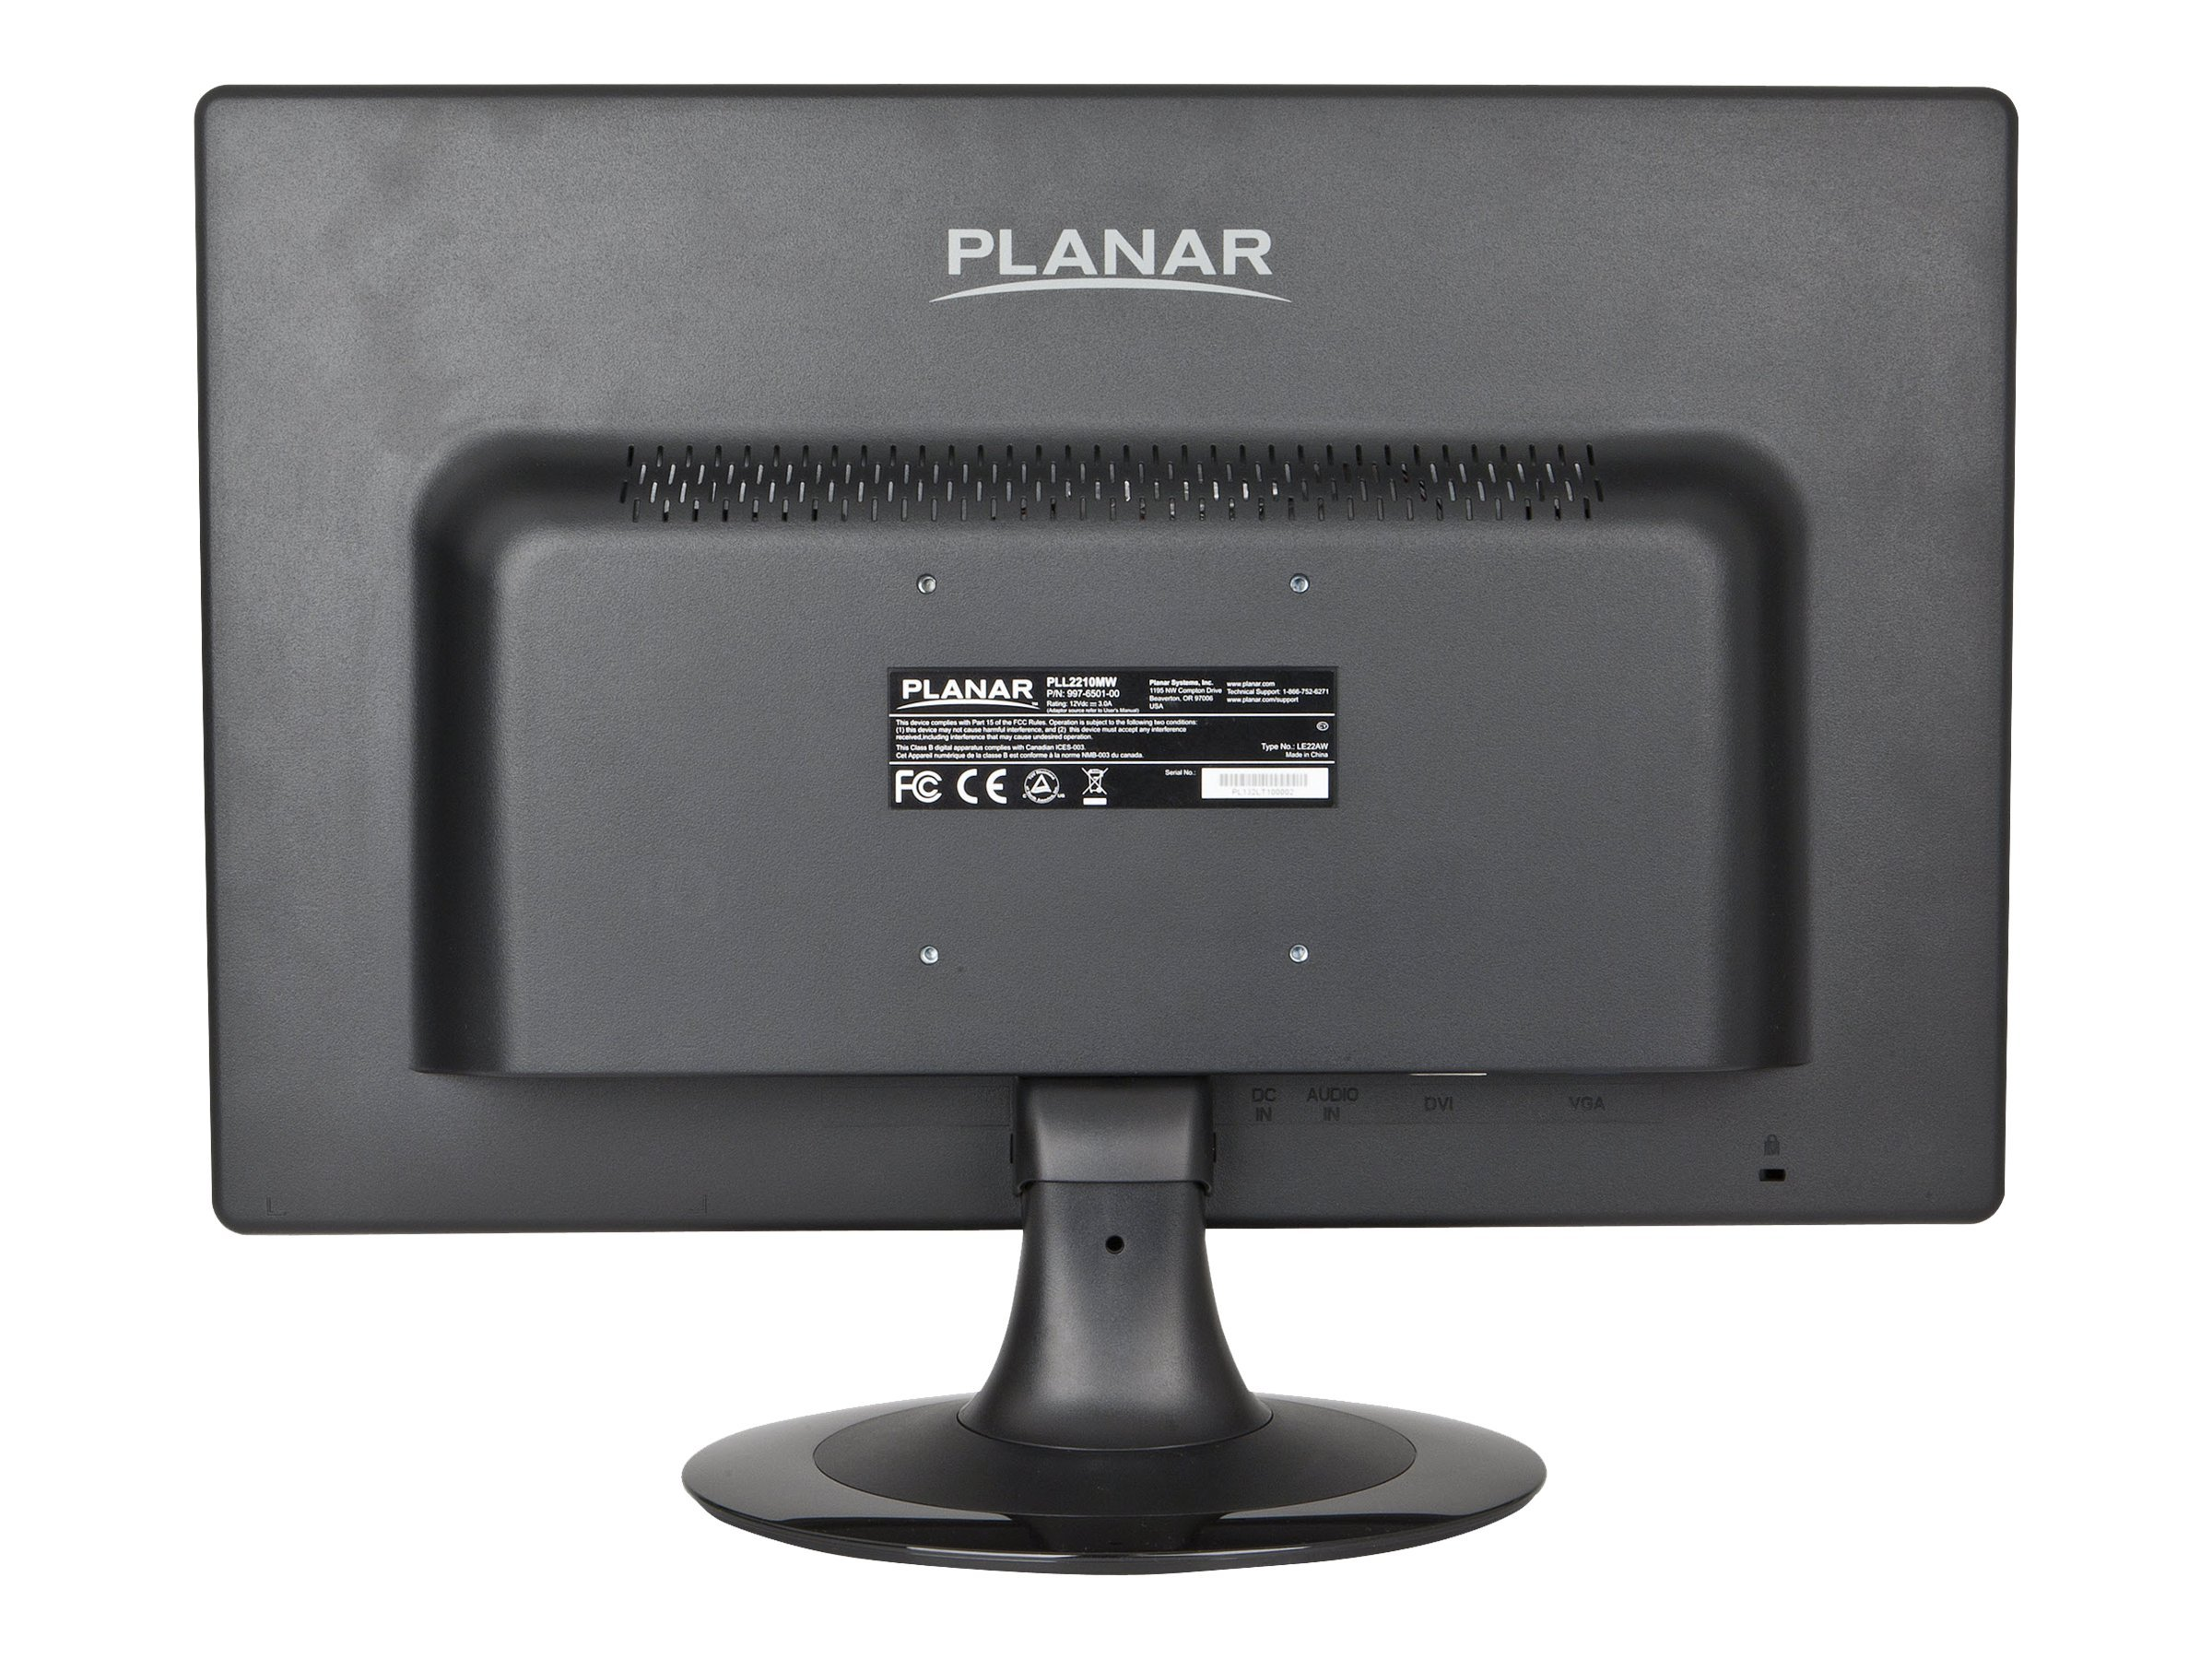 Planar 22 PLL2210mw Full HD LED Monitor, Black, 997-6501-00